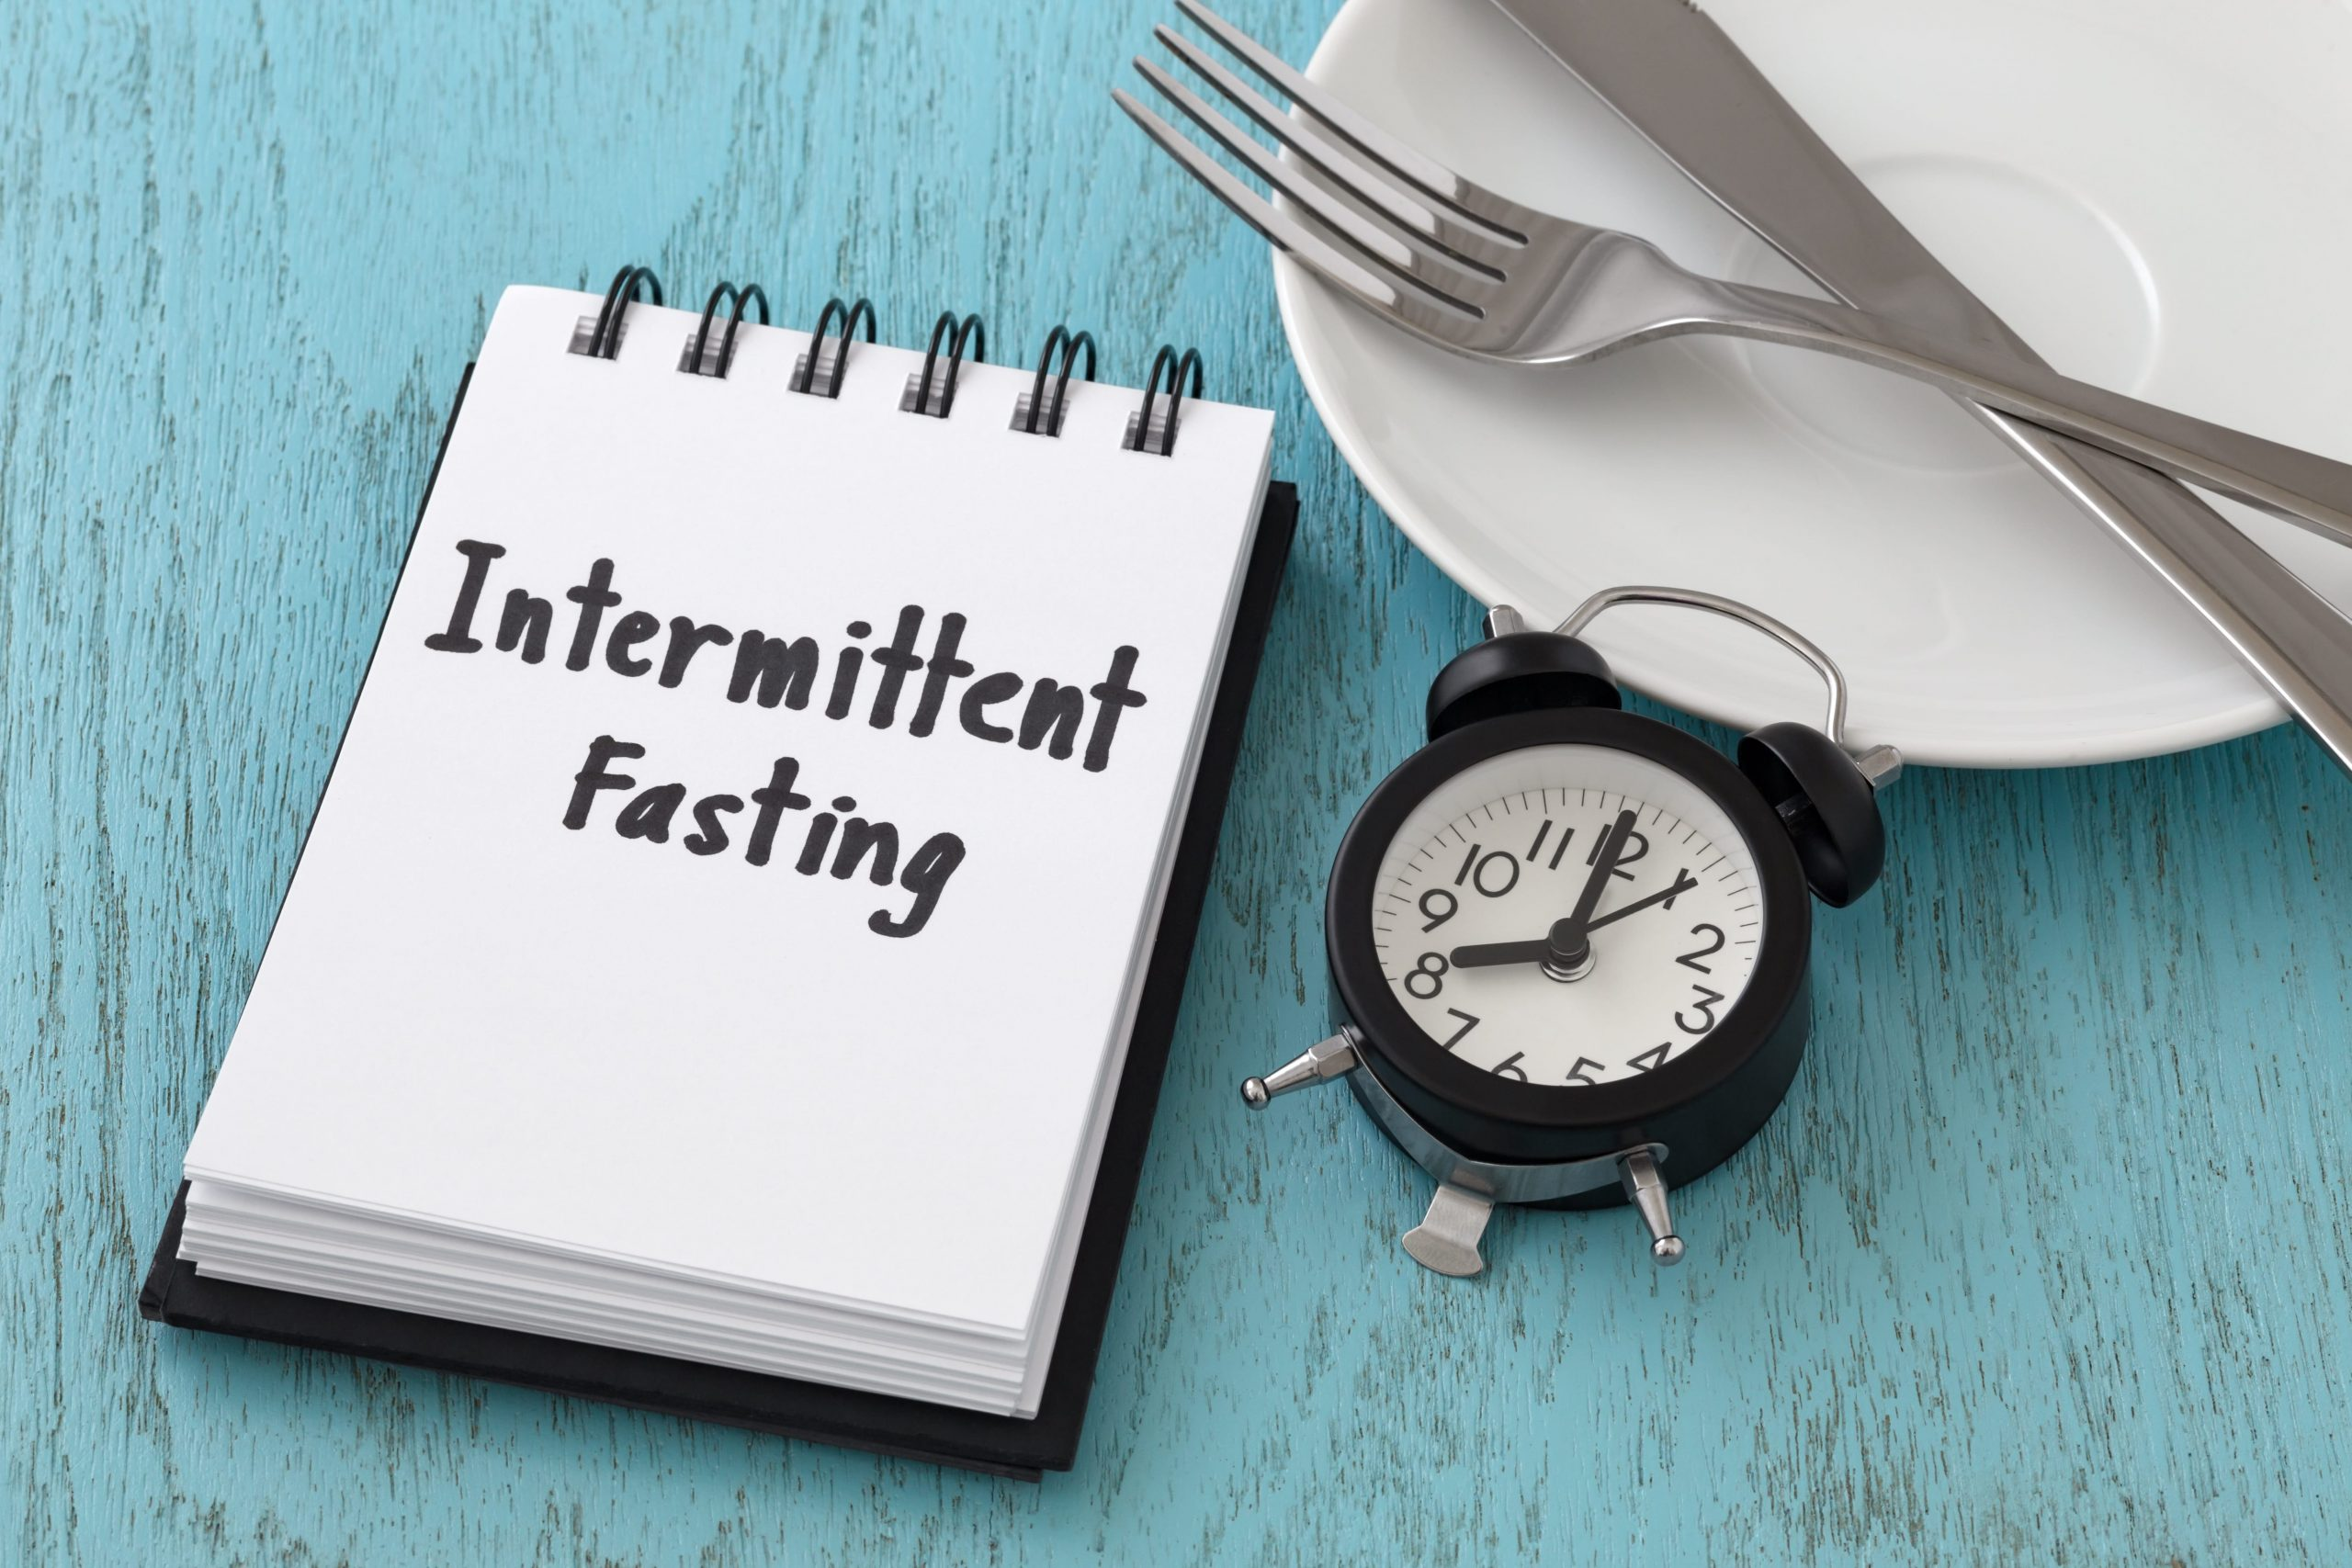 intermittent fasting 101